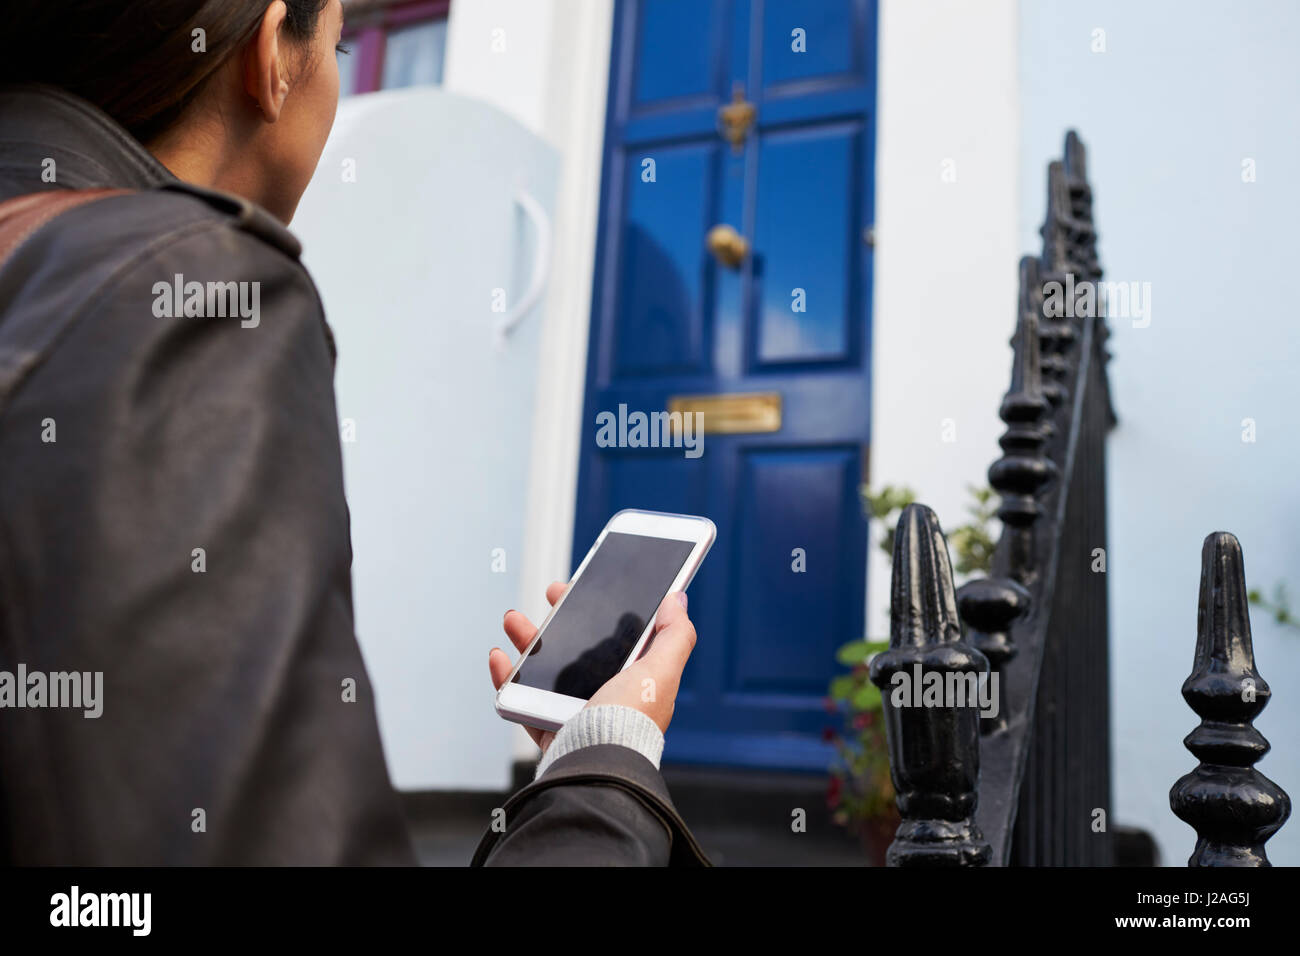 Young woman arriving at London house she's booked to stay in - Stock Image